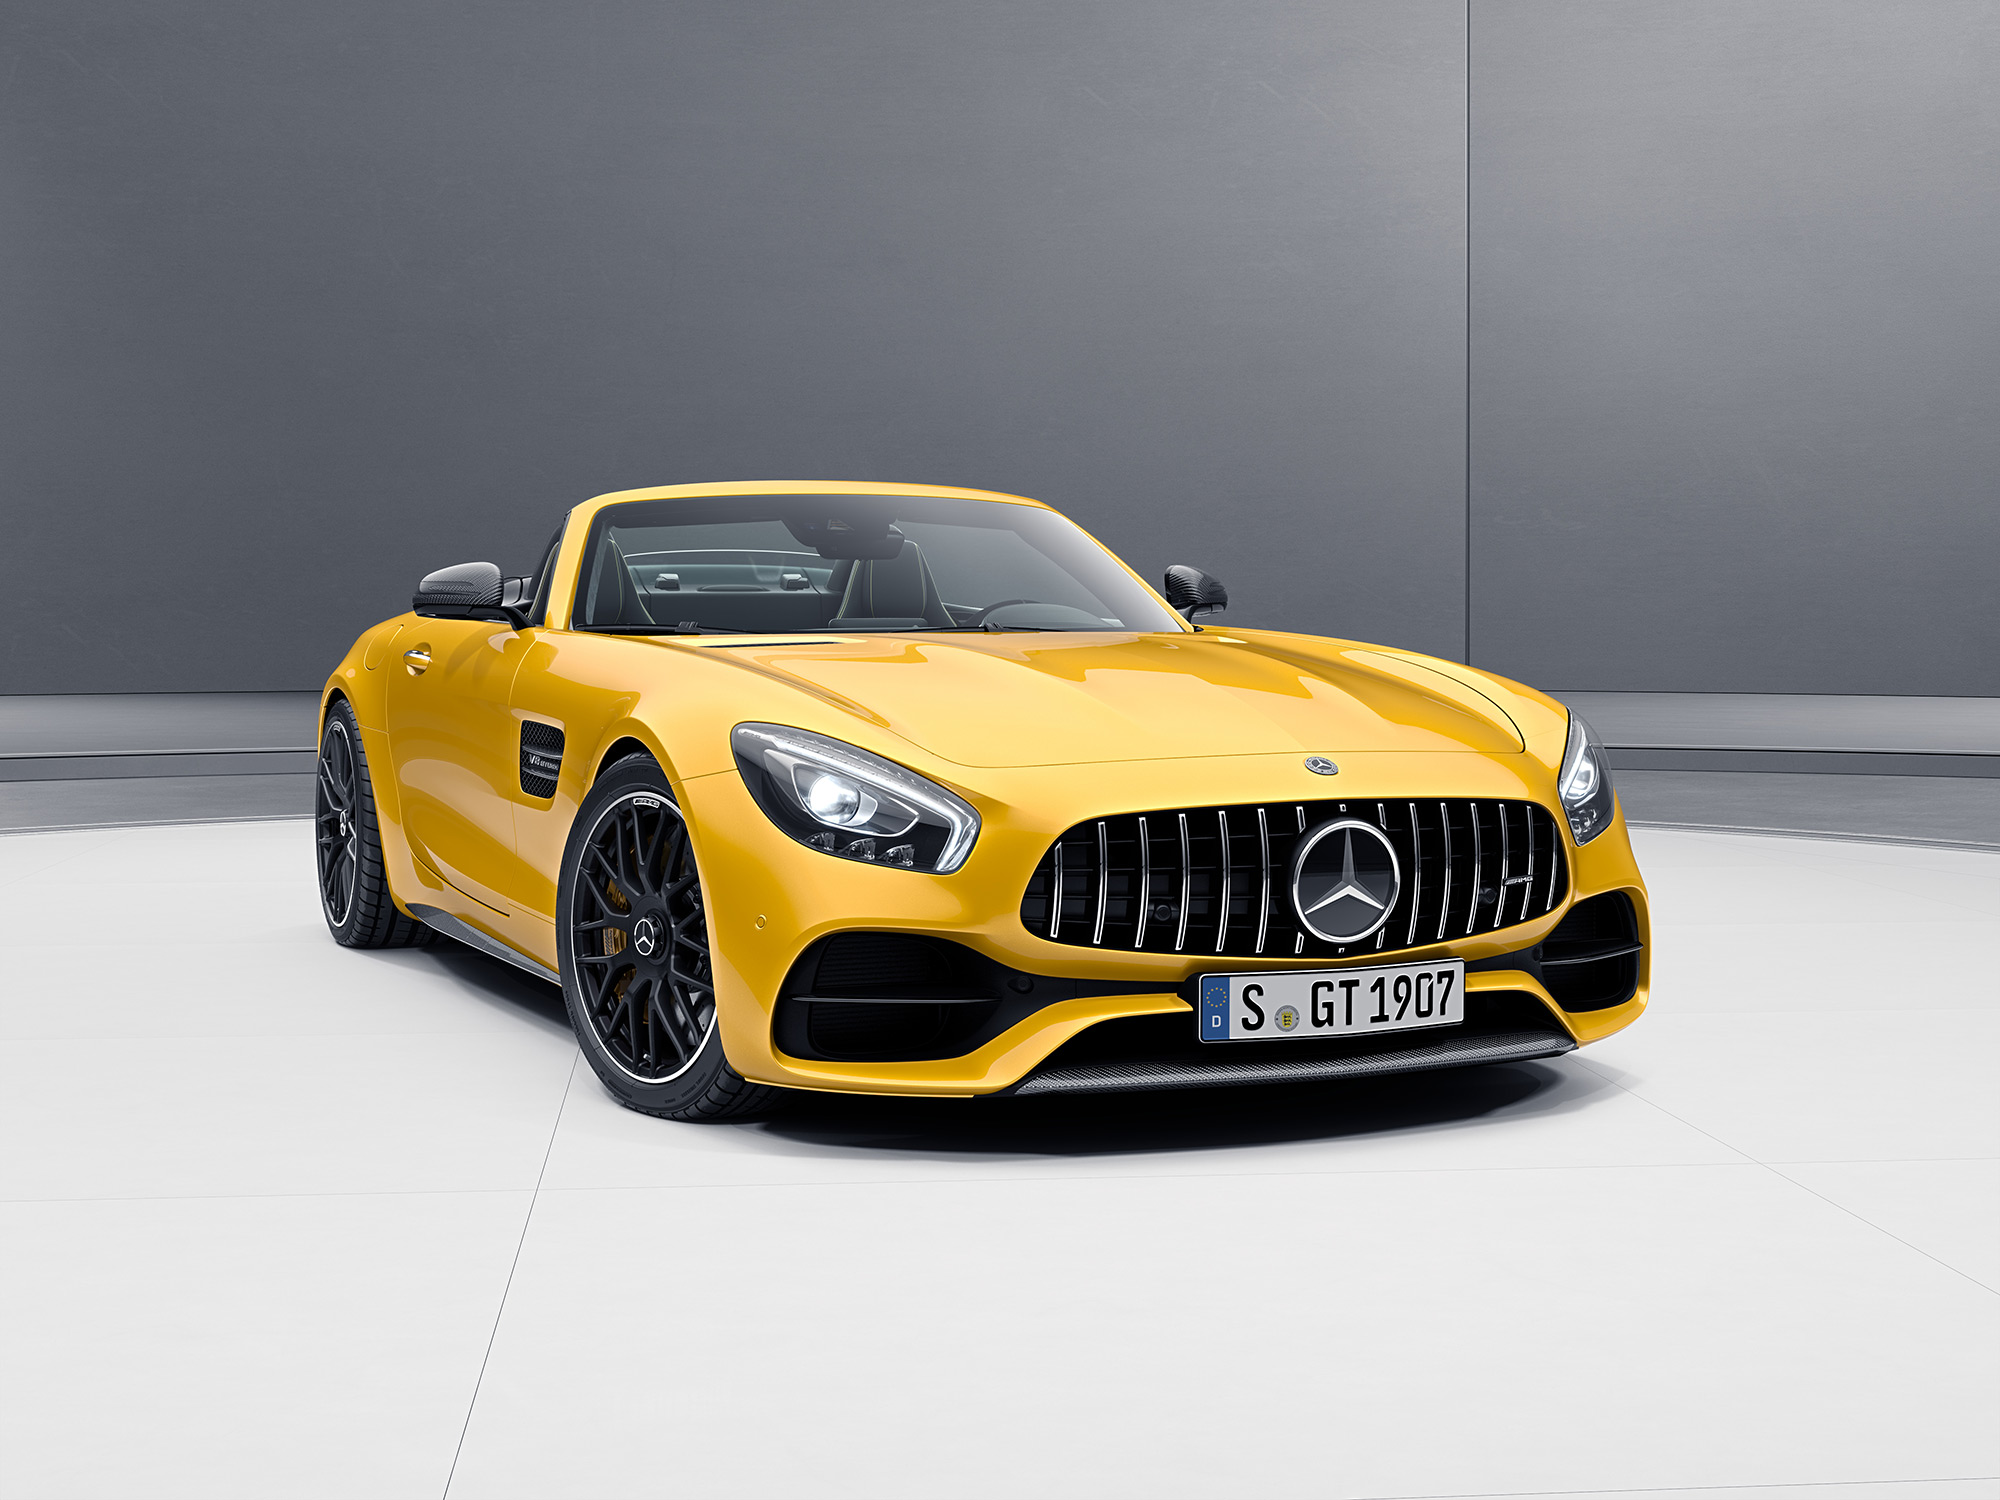 Mercedes benz amg gt roadster 2017 4 0l biturbo in bahrain for Mercedes benz amg gt coupe price